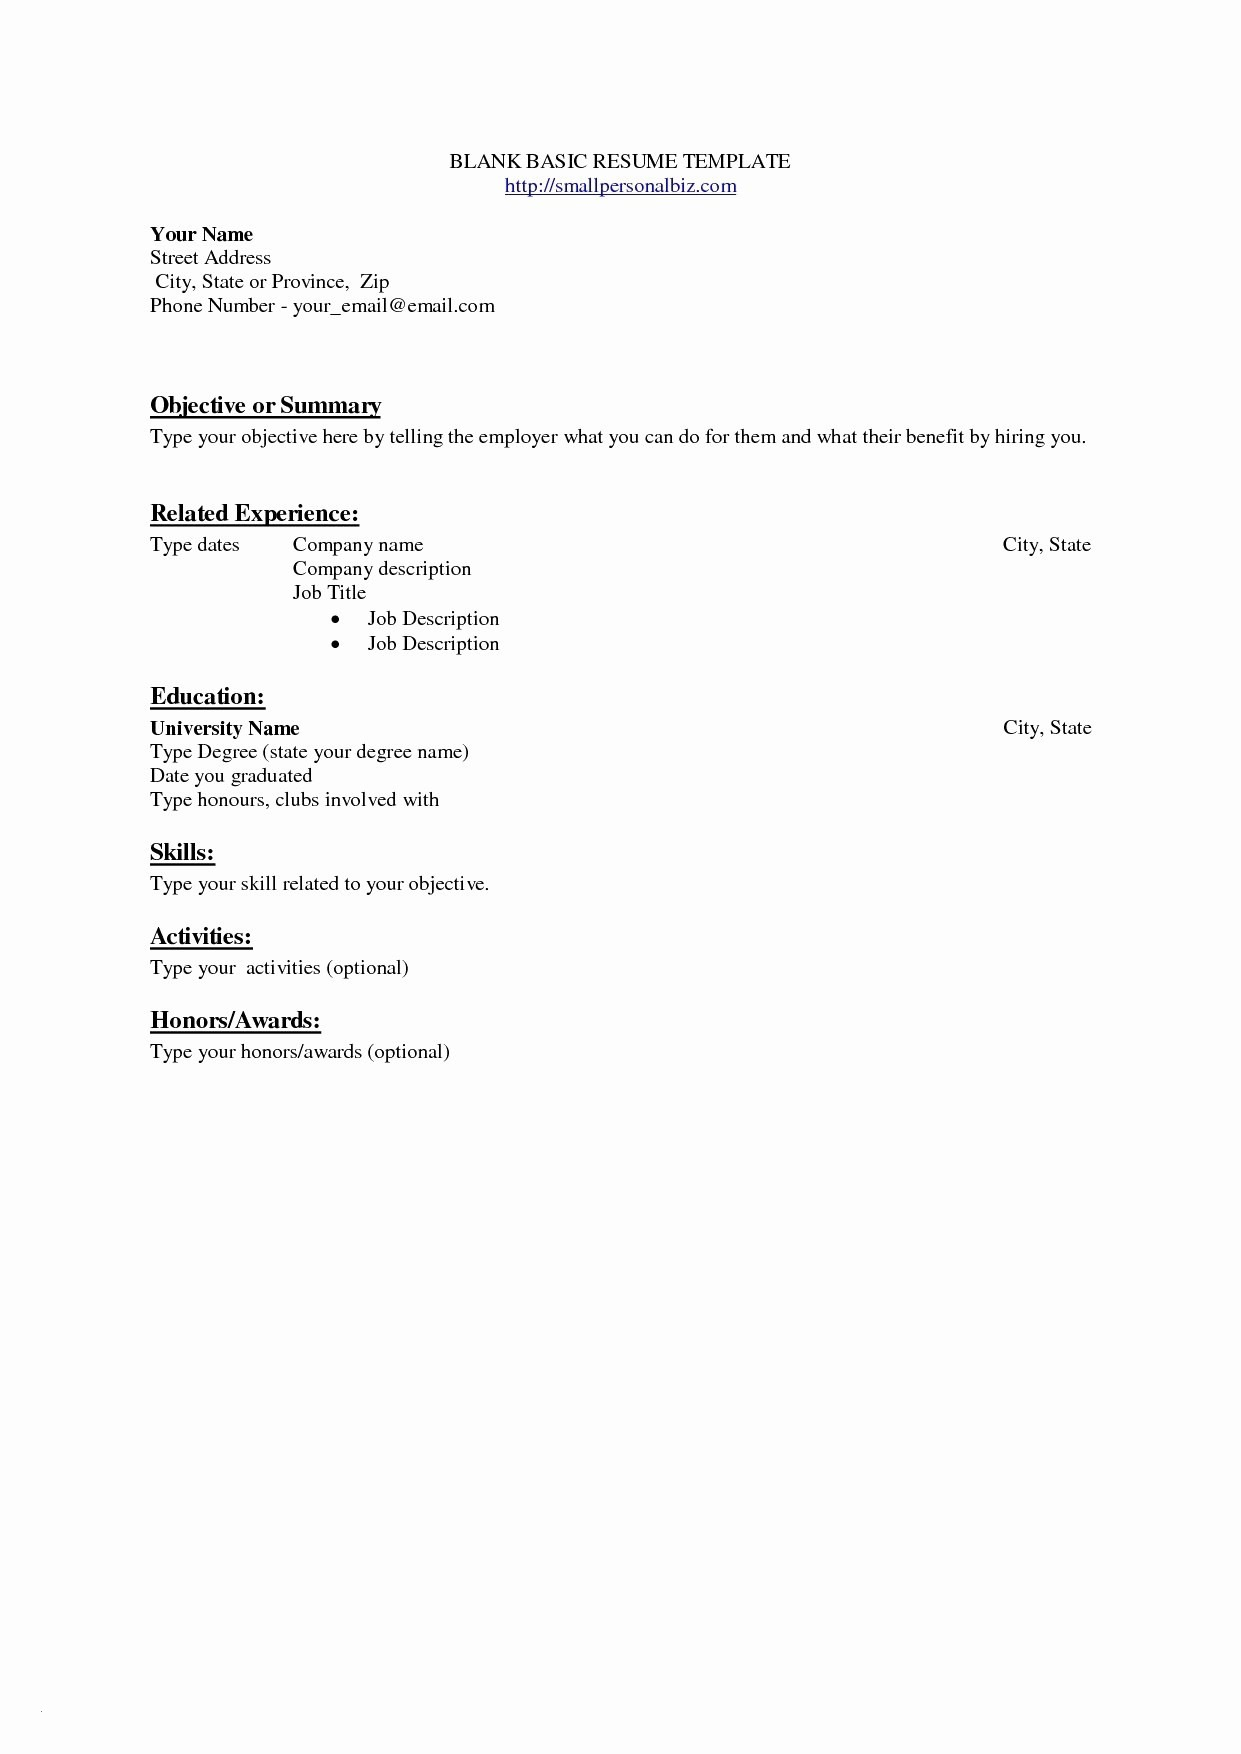 Resume and Cover Letter Template Microsoft Word - Basic Resume Template Microsoft Word Inspirational New Programmer